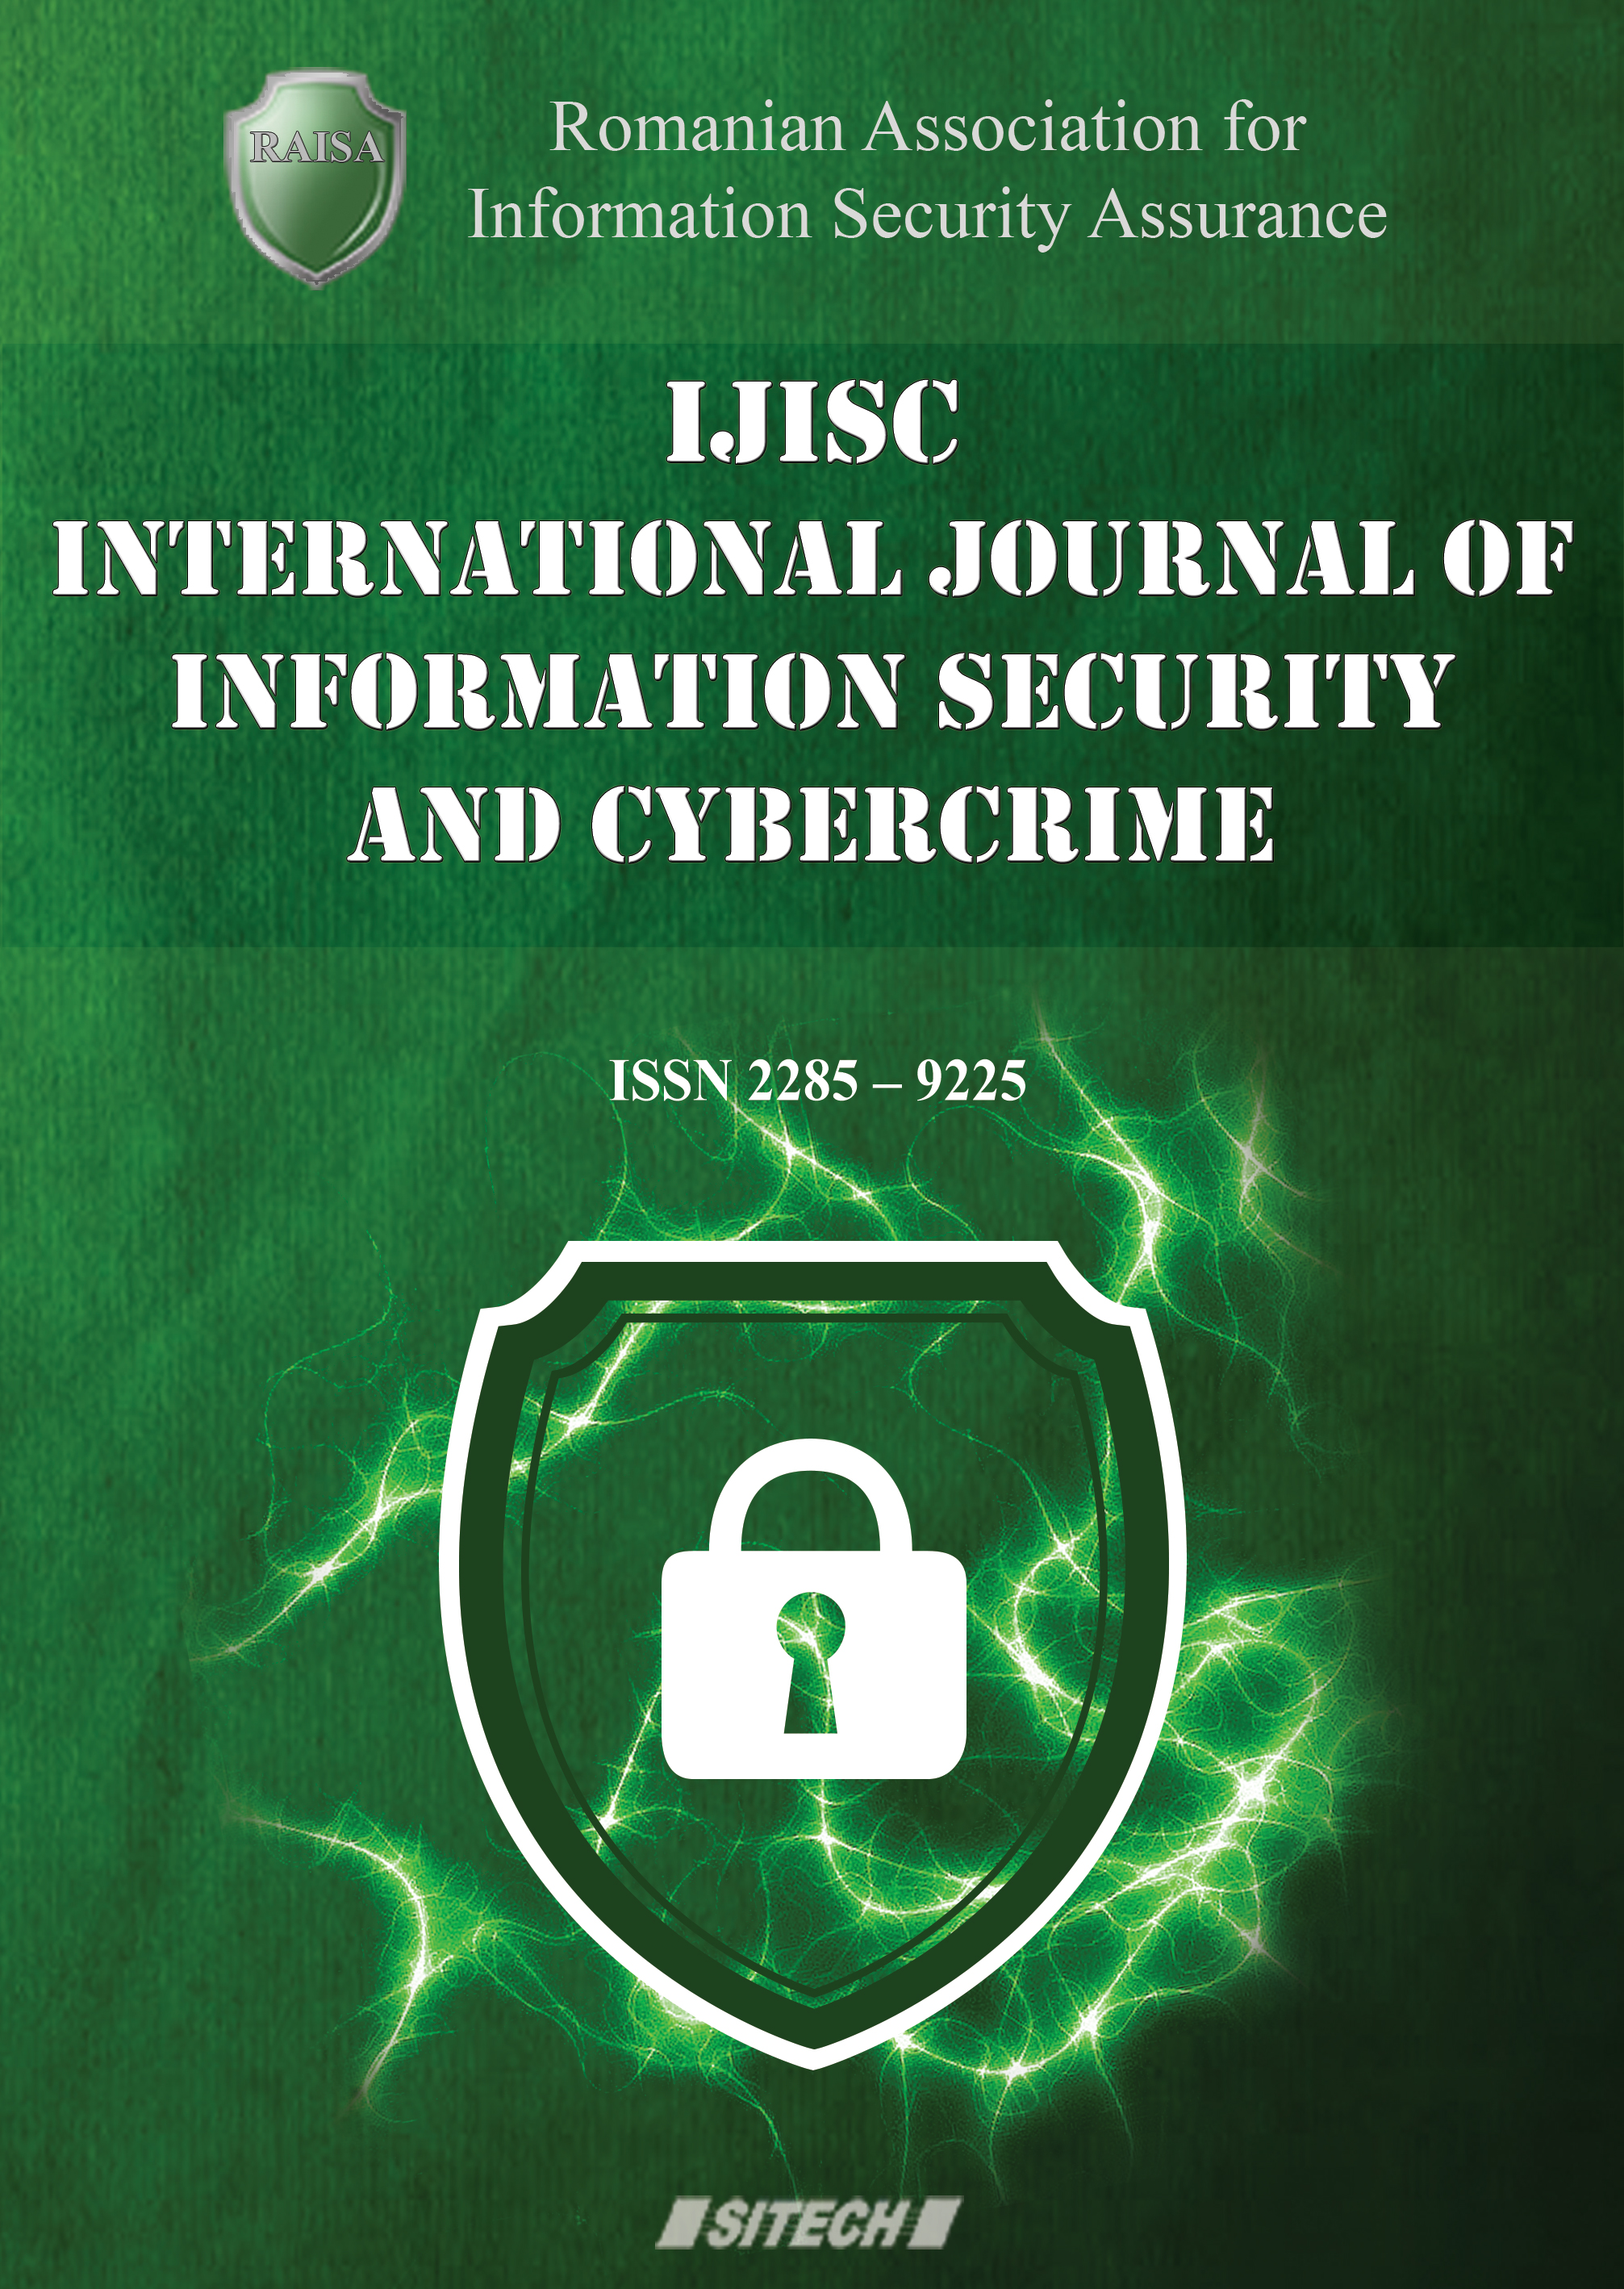 International Journal of Information Security and Cybercrime (IJISC)